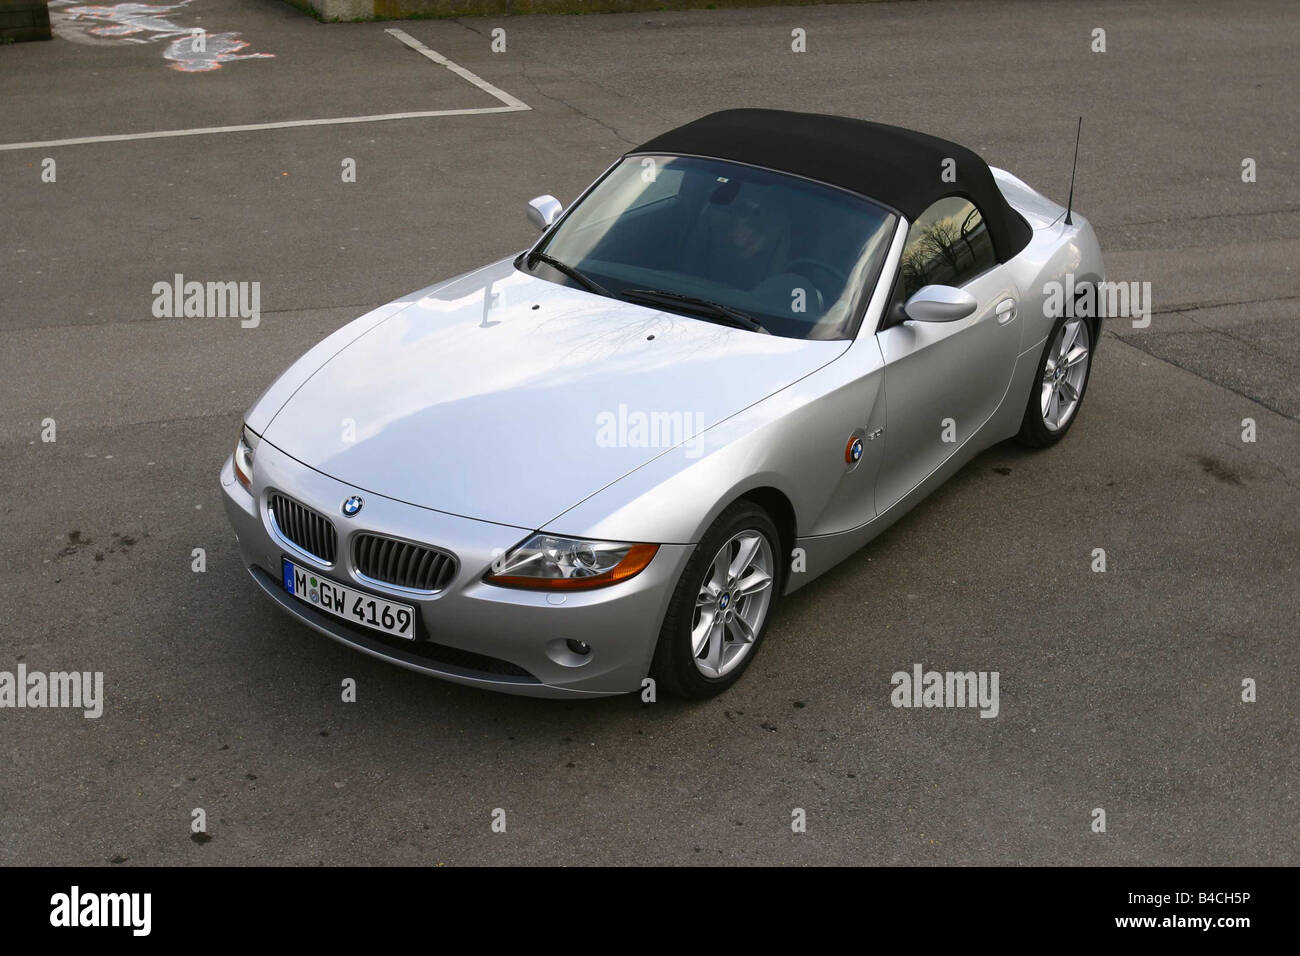 Bmw Z4 1990 Bmw Z4 1990 Amazing Photo Gallery Some